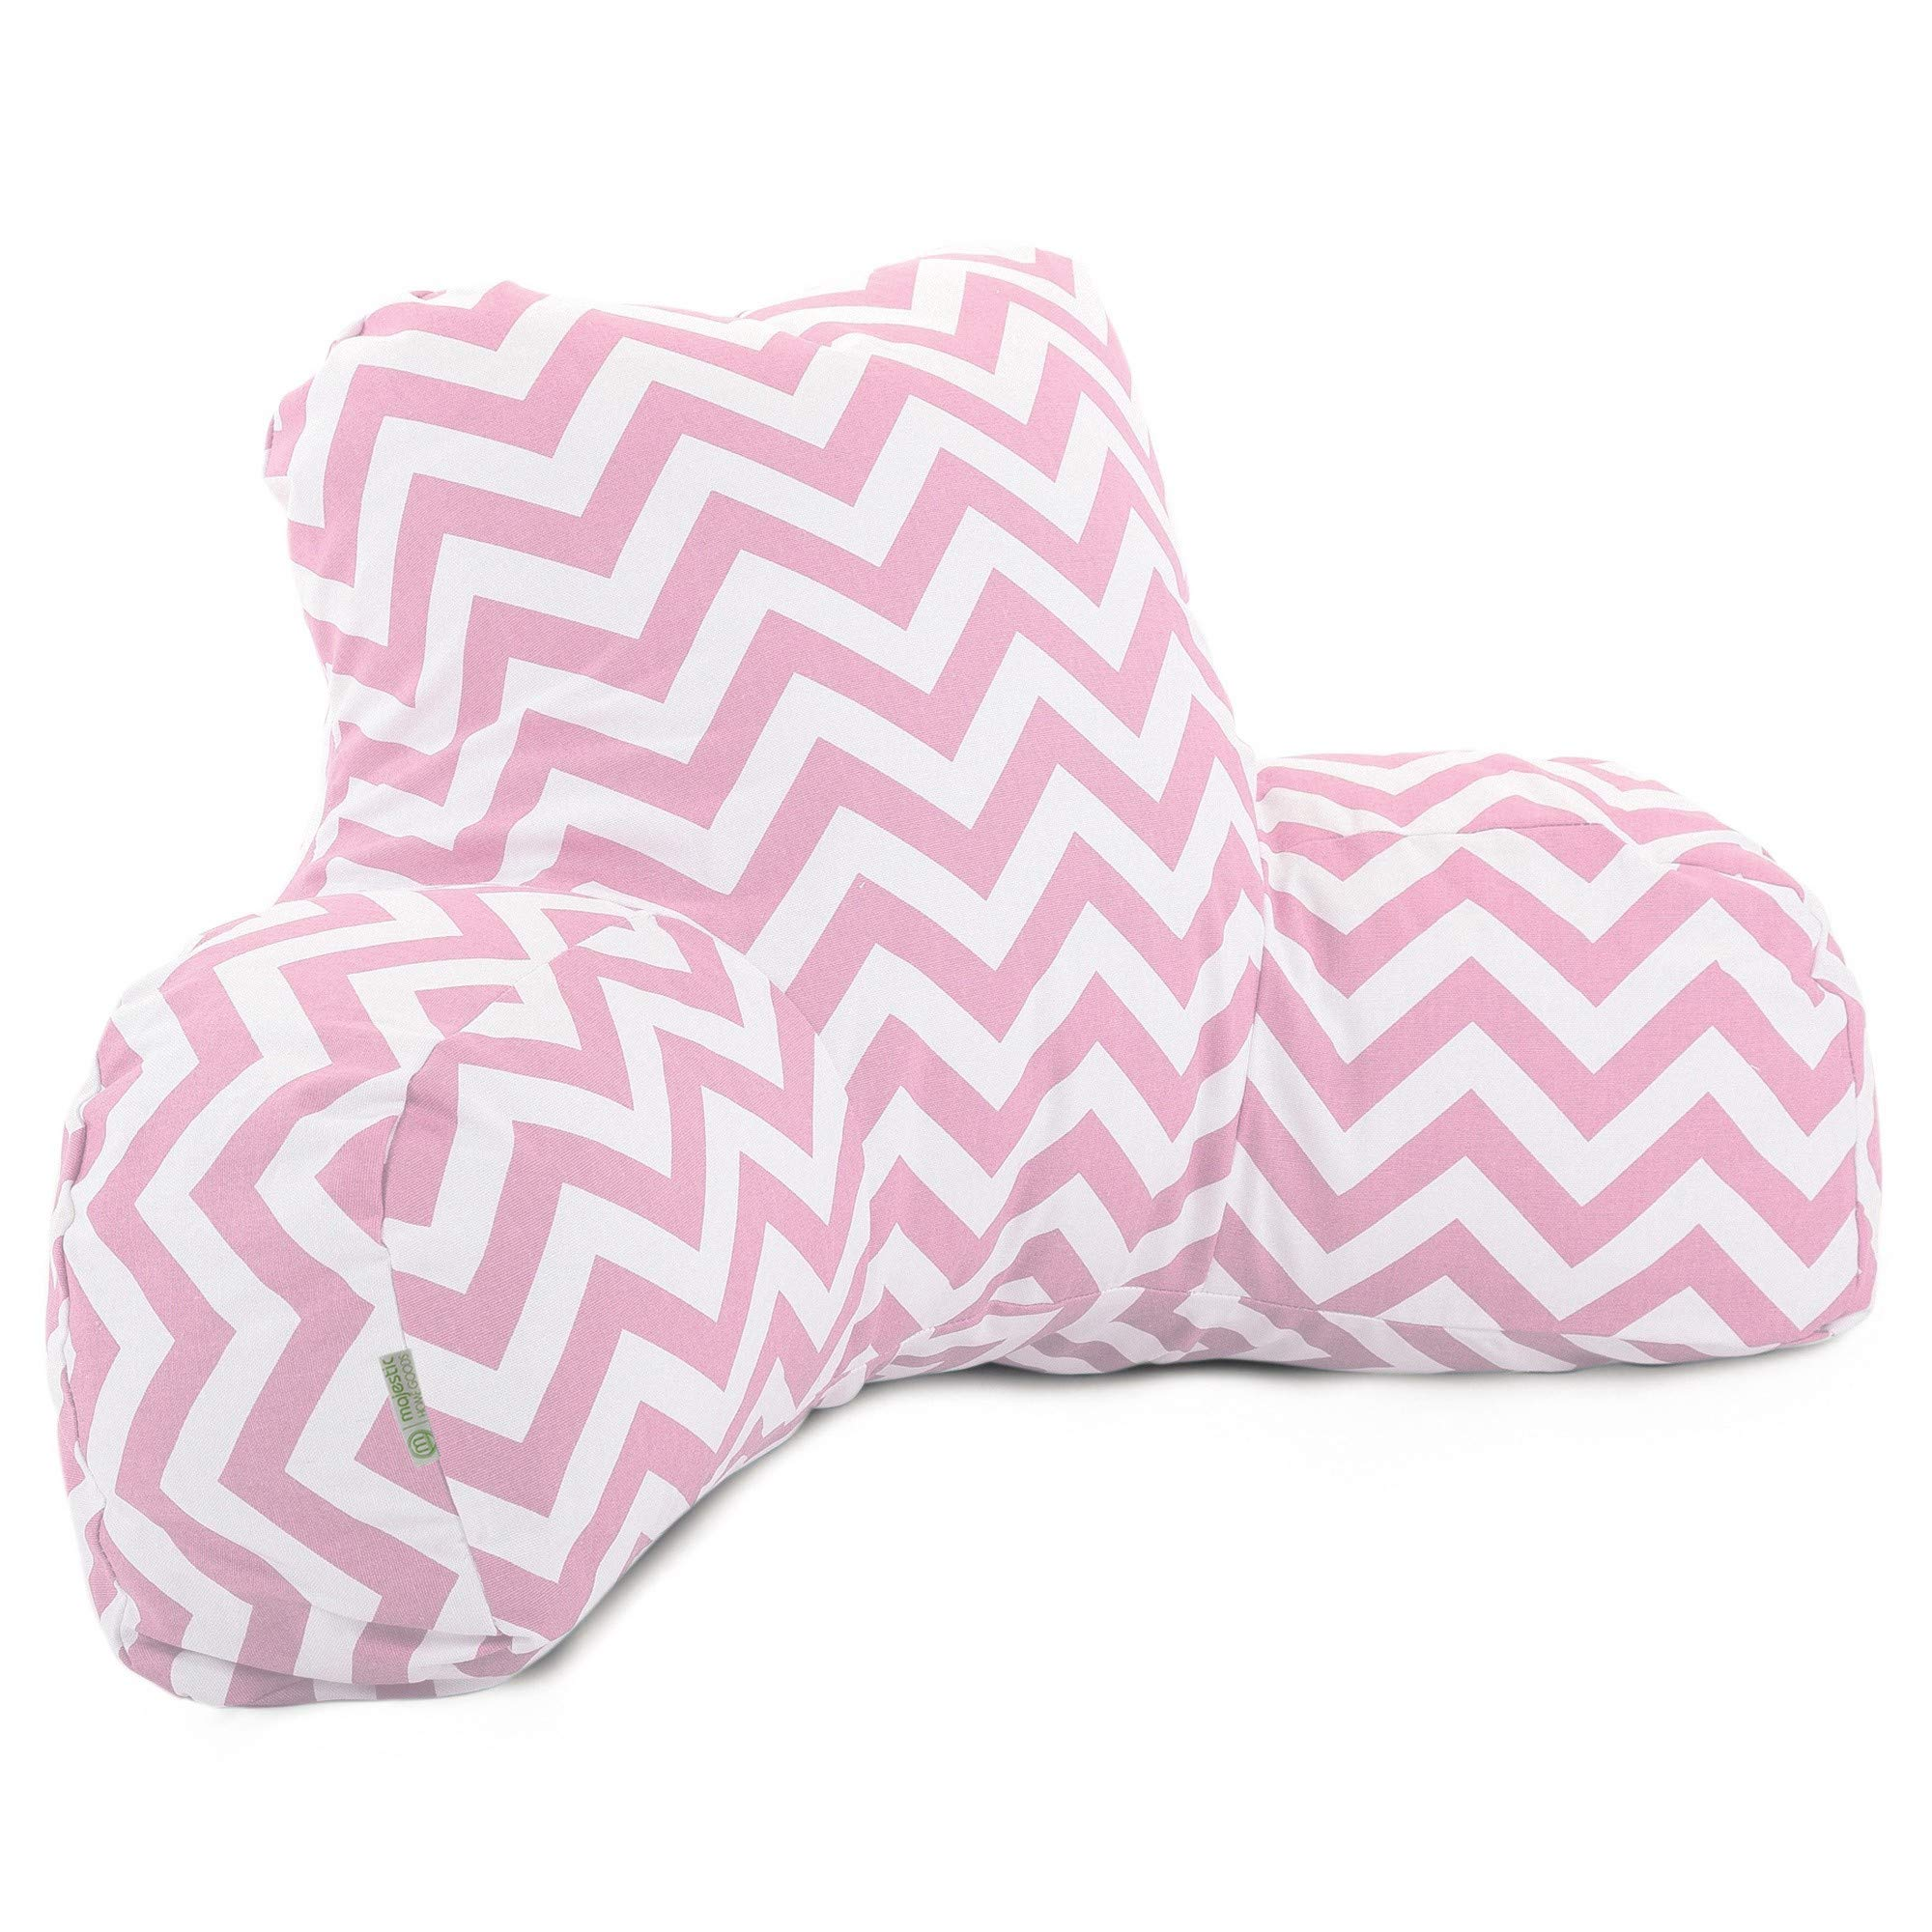 Majestic Home Goods Chevron Reading Pillow, Baby Pink by Majestic Home Goods